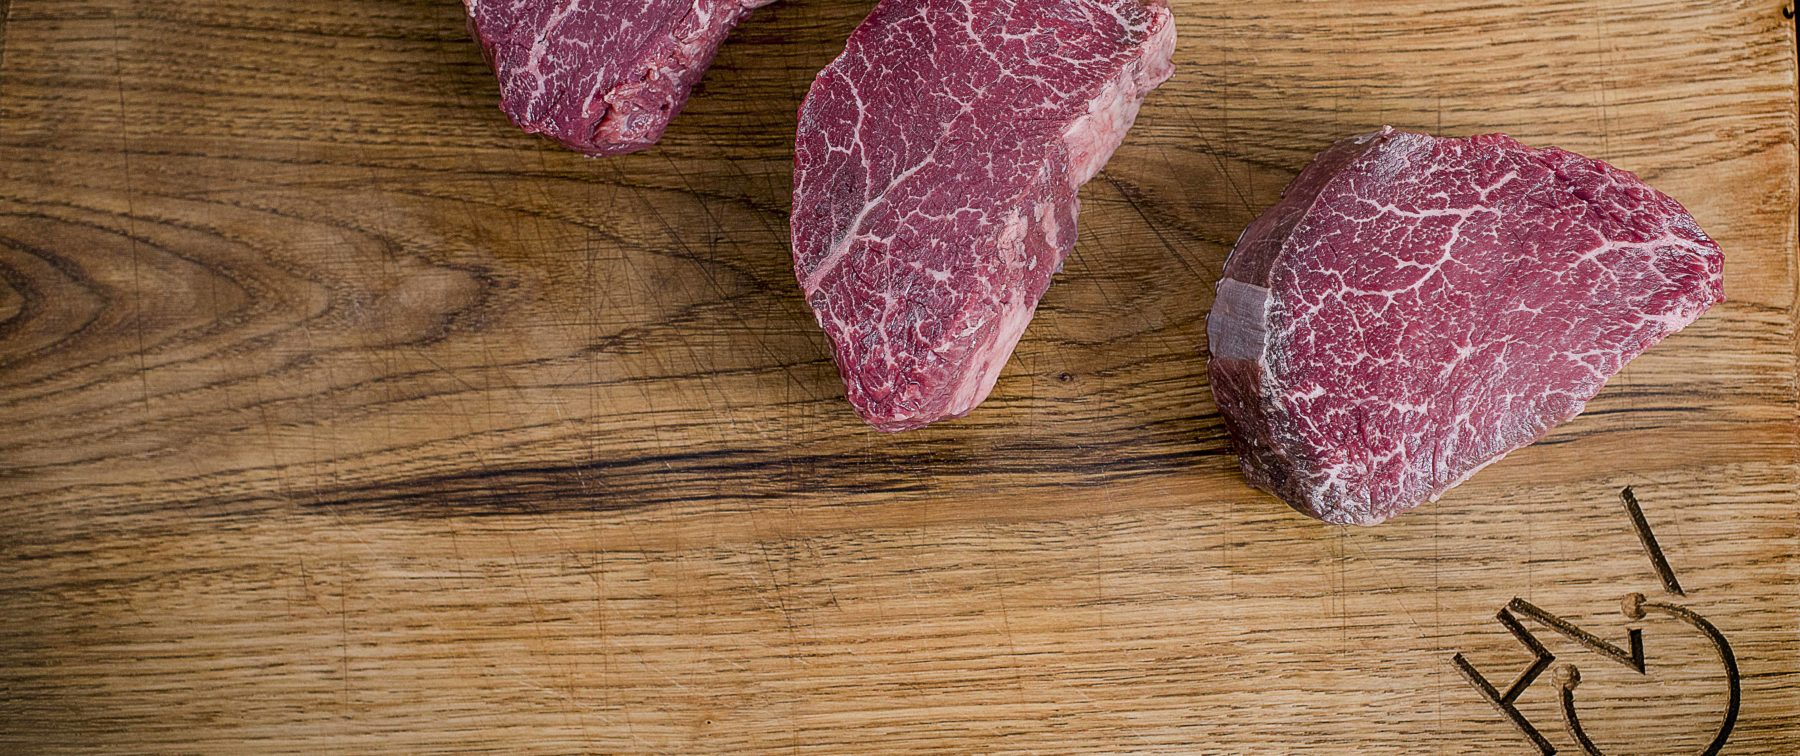 scottish wagyu beef